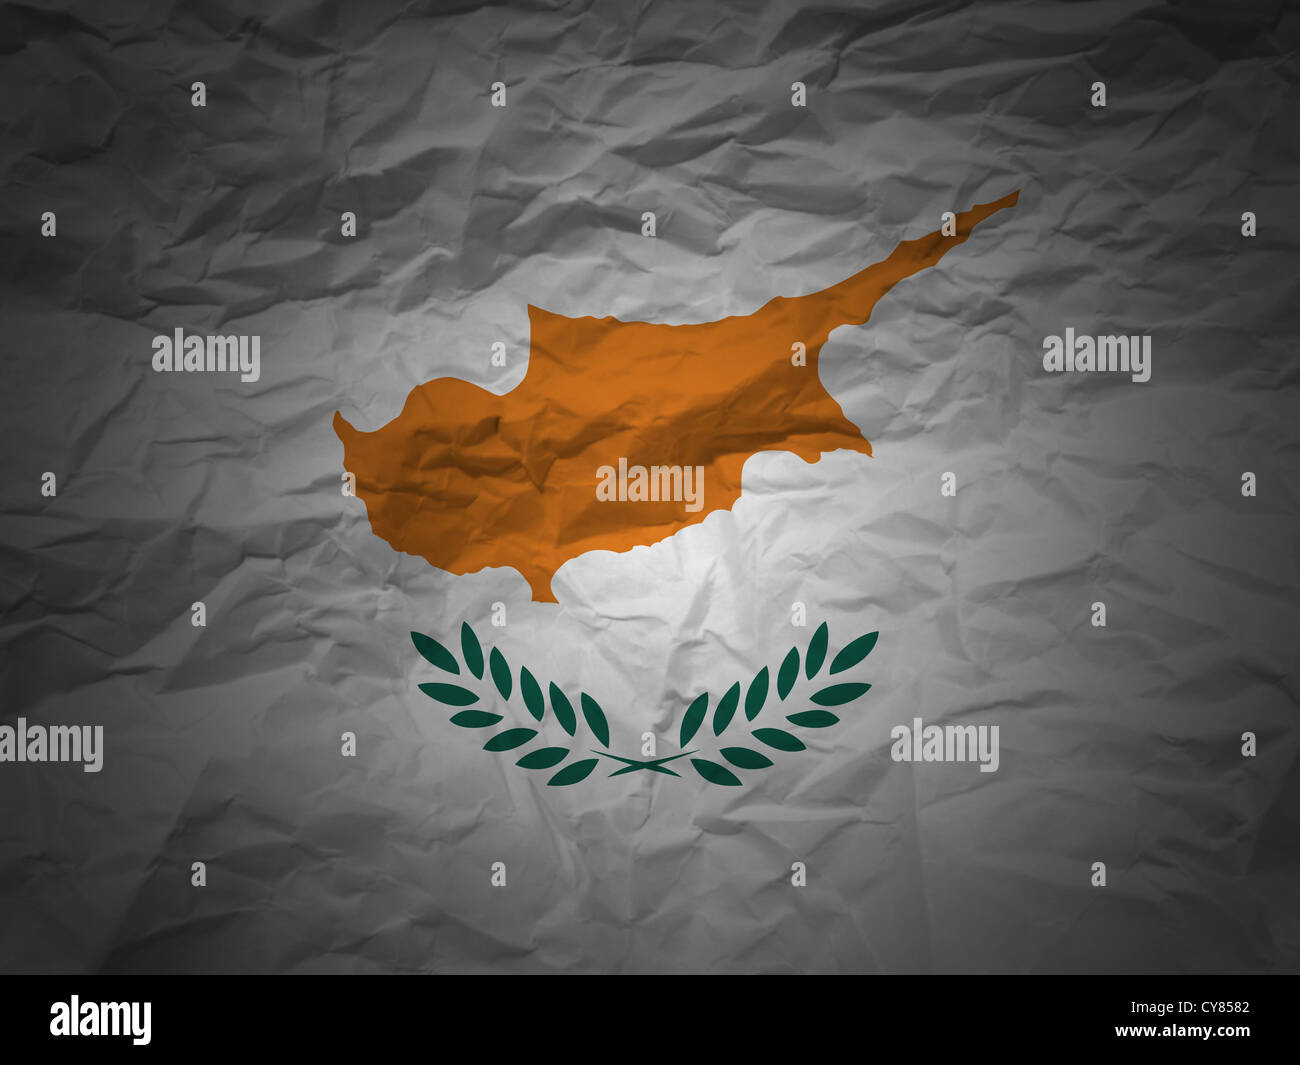 Cyprus flag on a grunge paper background. - Stock Image